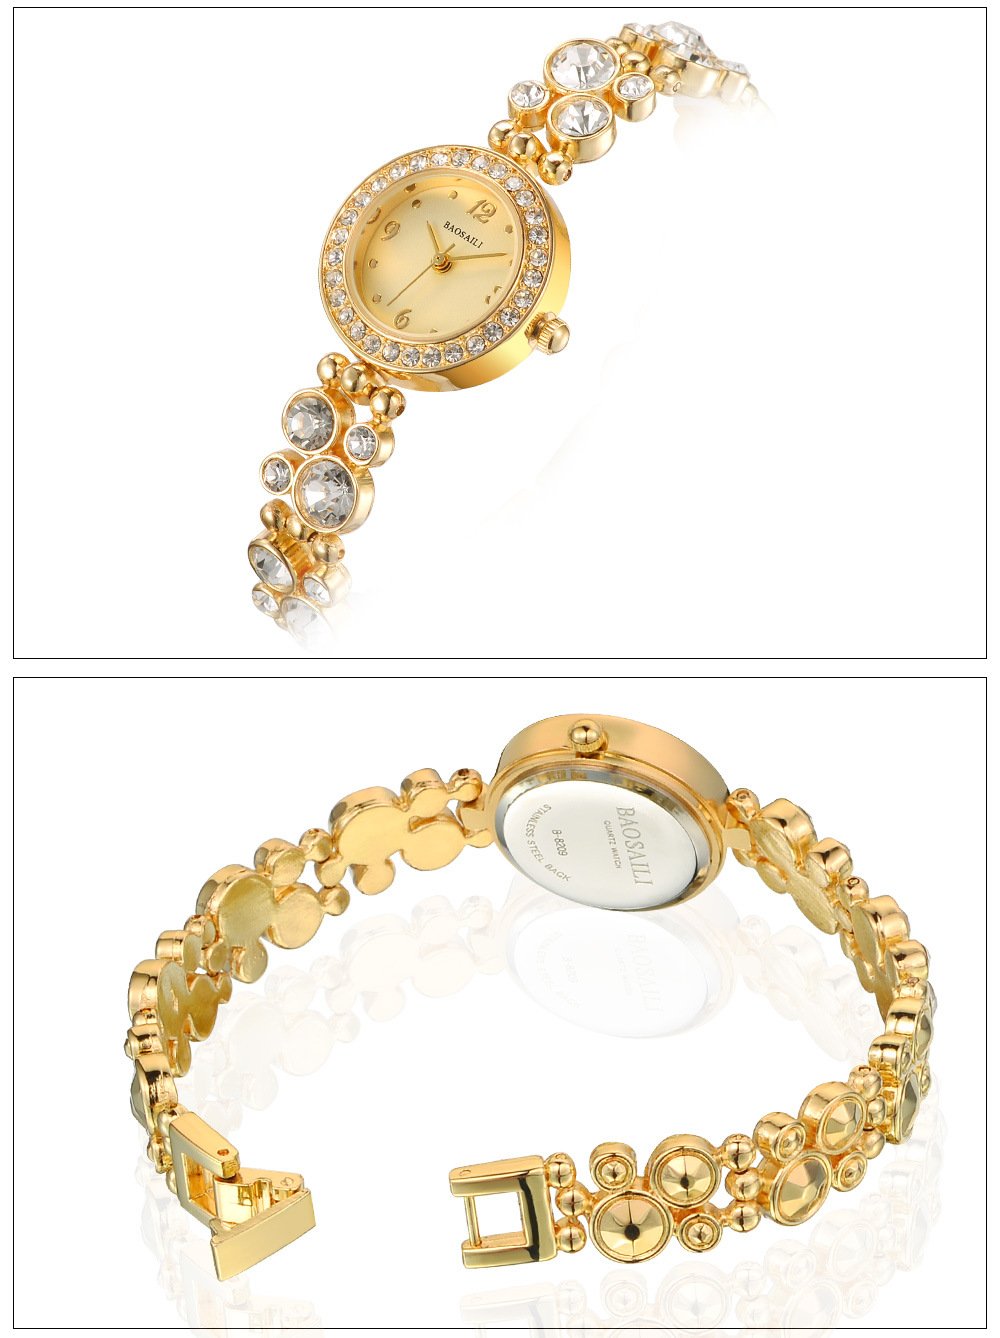 BAOSAILI B-8209 Gleaming Diamond Ladies Bracelet Watch